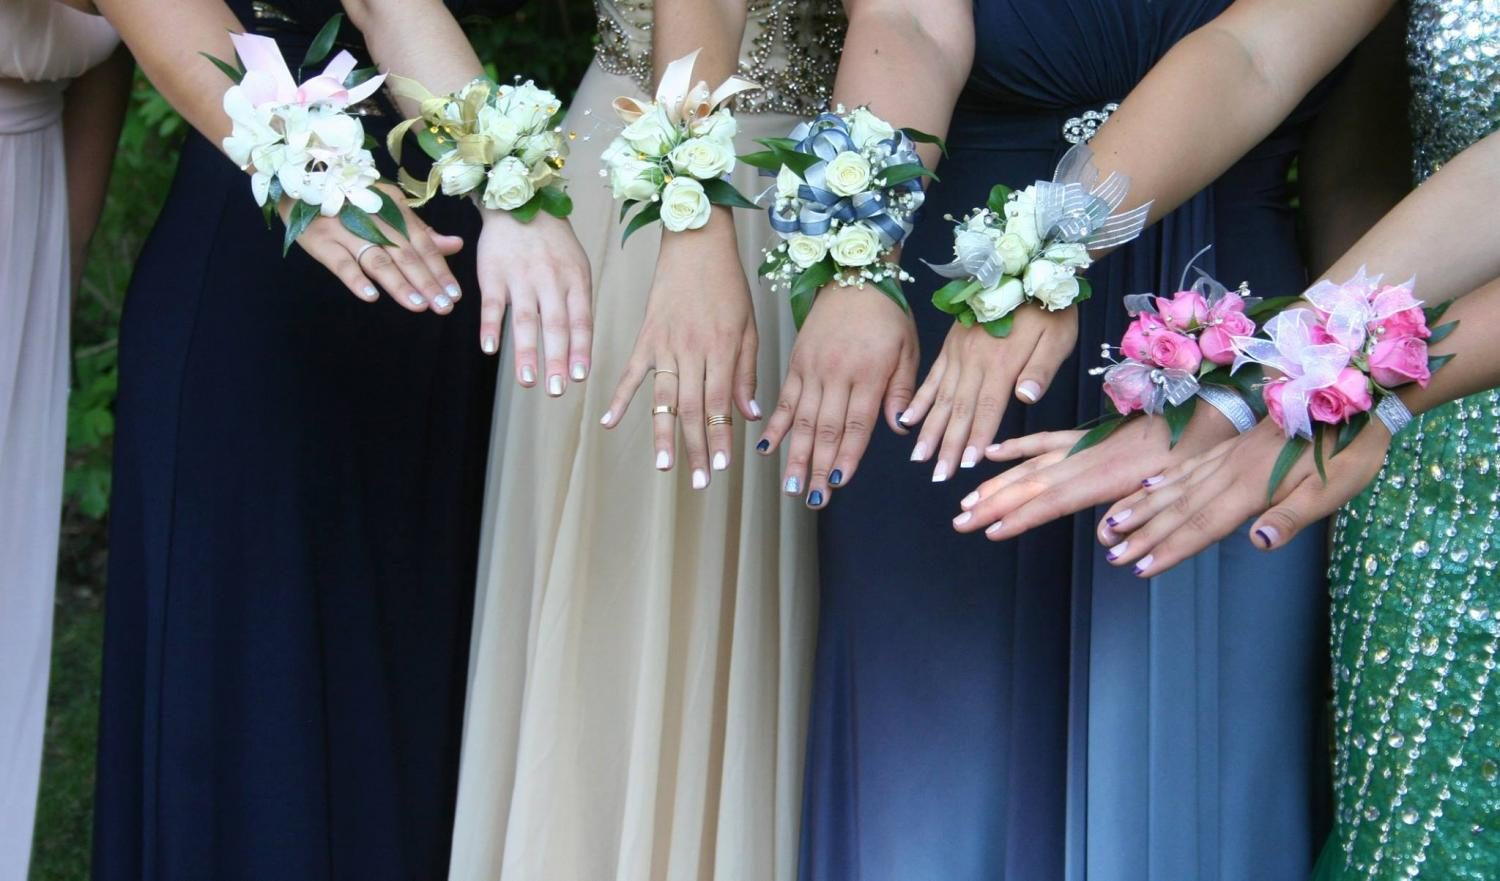 Corsages%2C+along+with+bouquets+and+boutineers%2C+can+add+to+your+look+and+the+fun+of+homecoming%2Fprom+night.